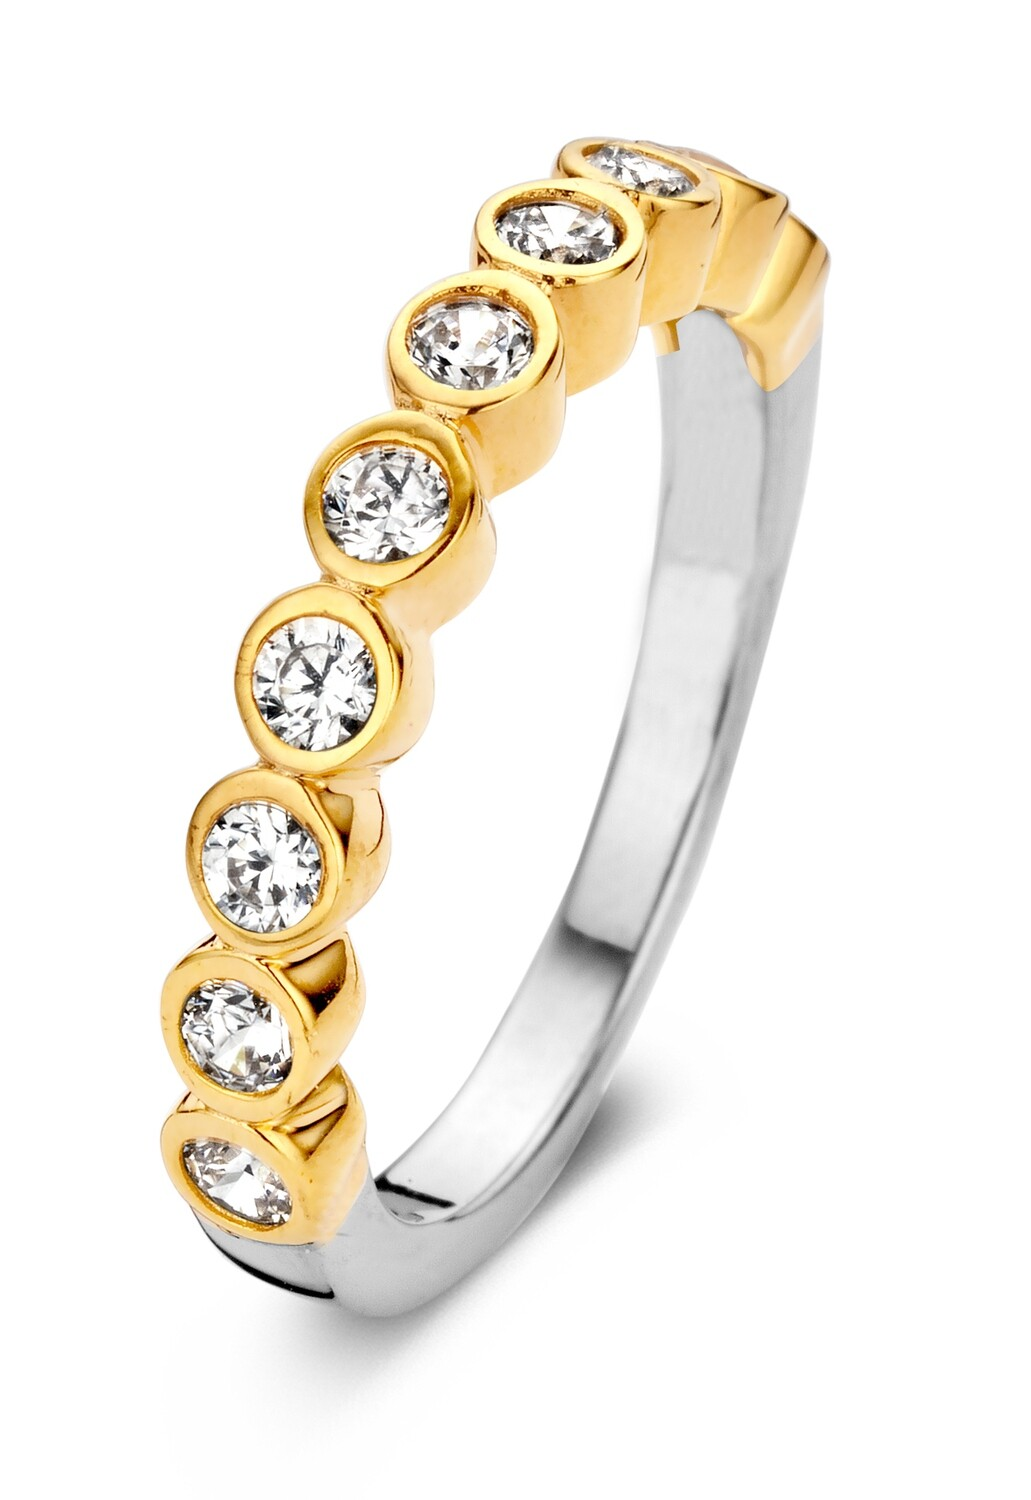 R6251G-54 Gold plated set with white cz